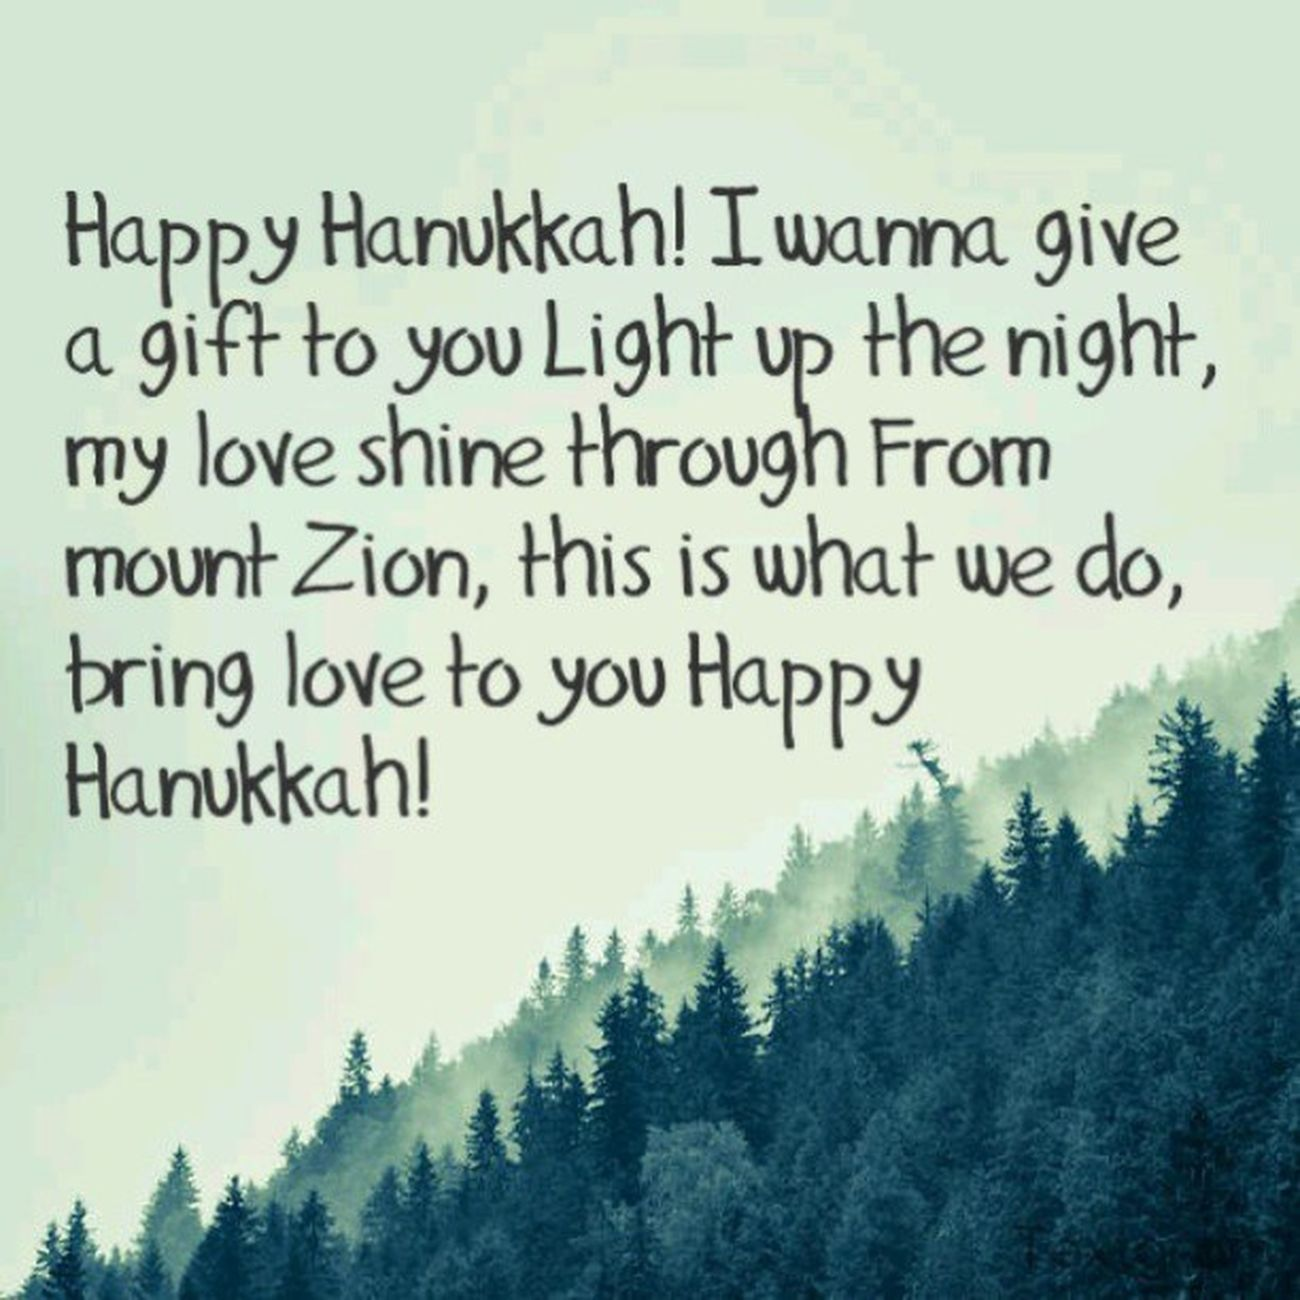 Happy Hanukkah-Matisyahu Matisyahu Hanukkah Hashem God Zion Happy Gift World love Beautiful lyrics Song Singer Artist